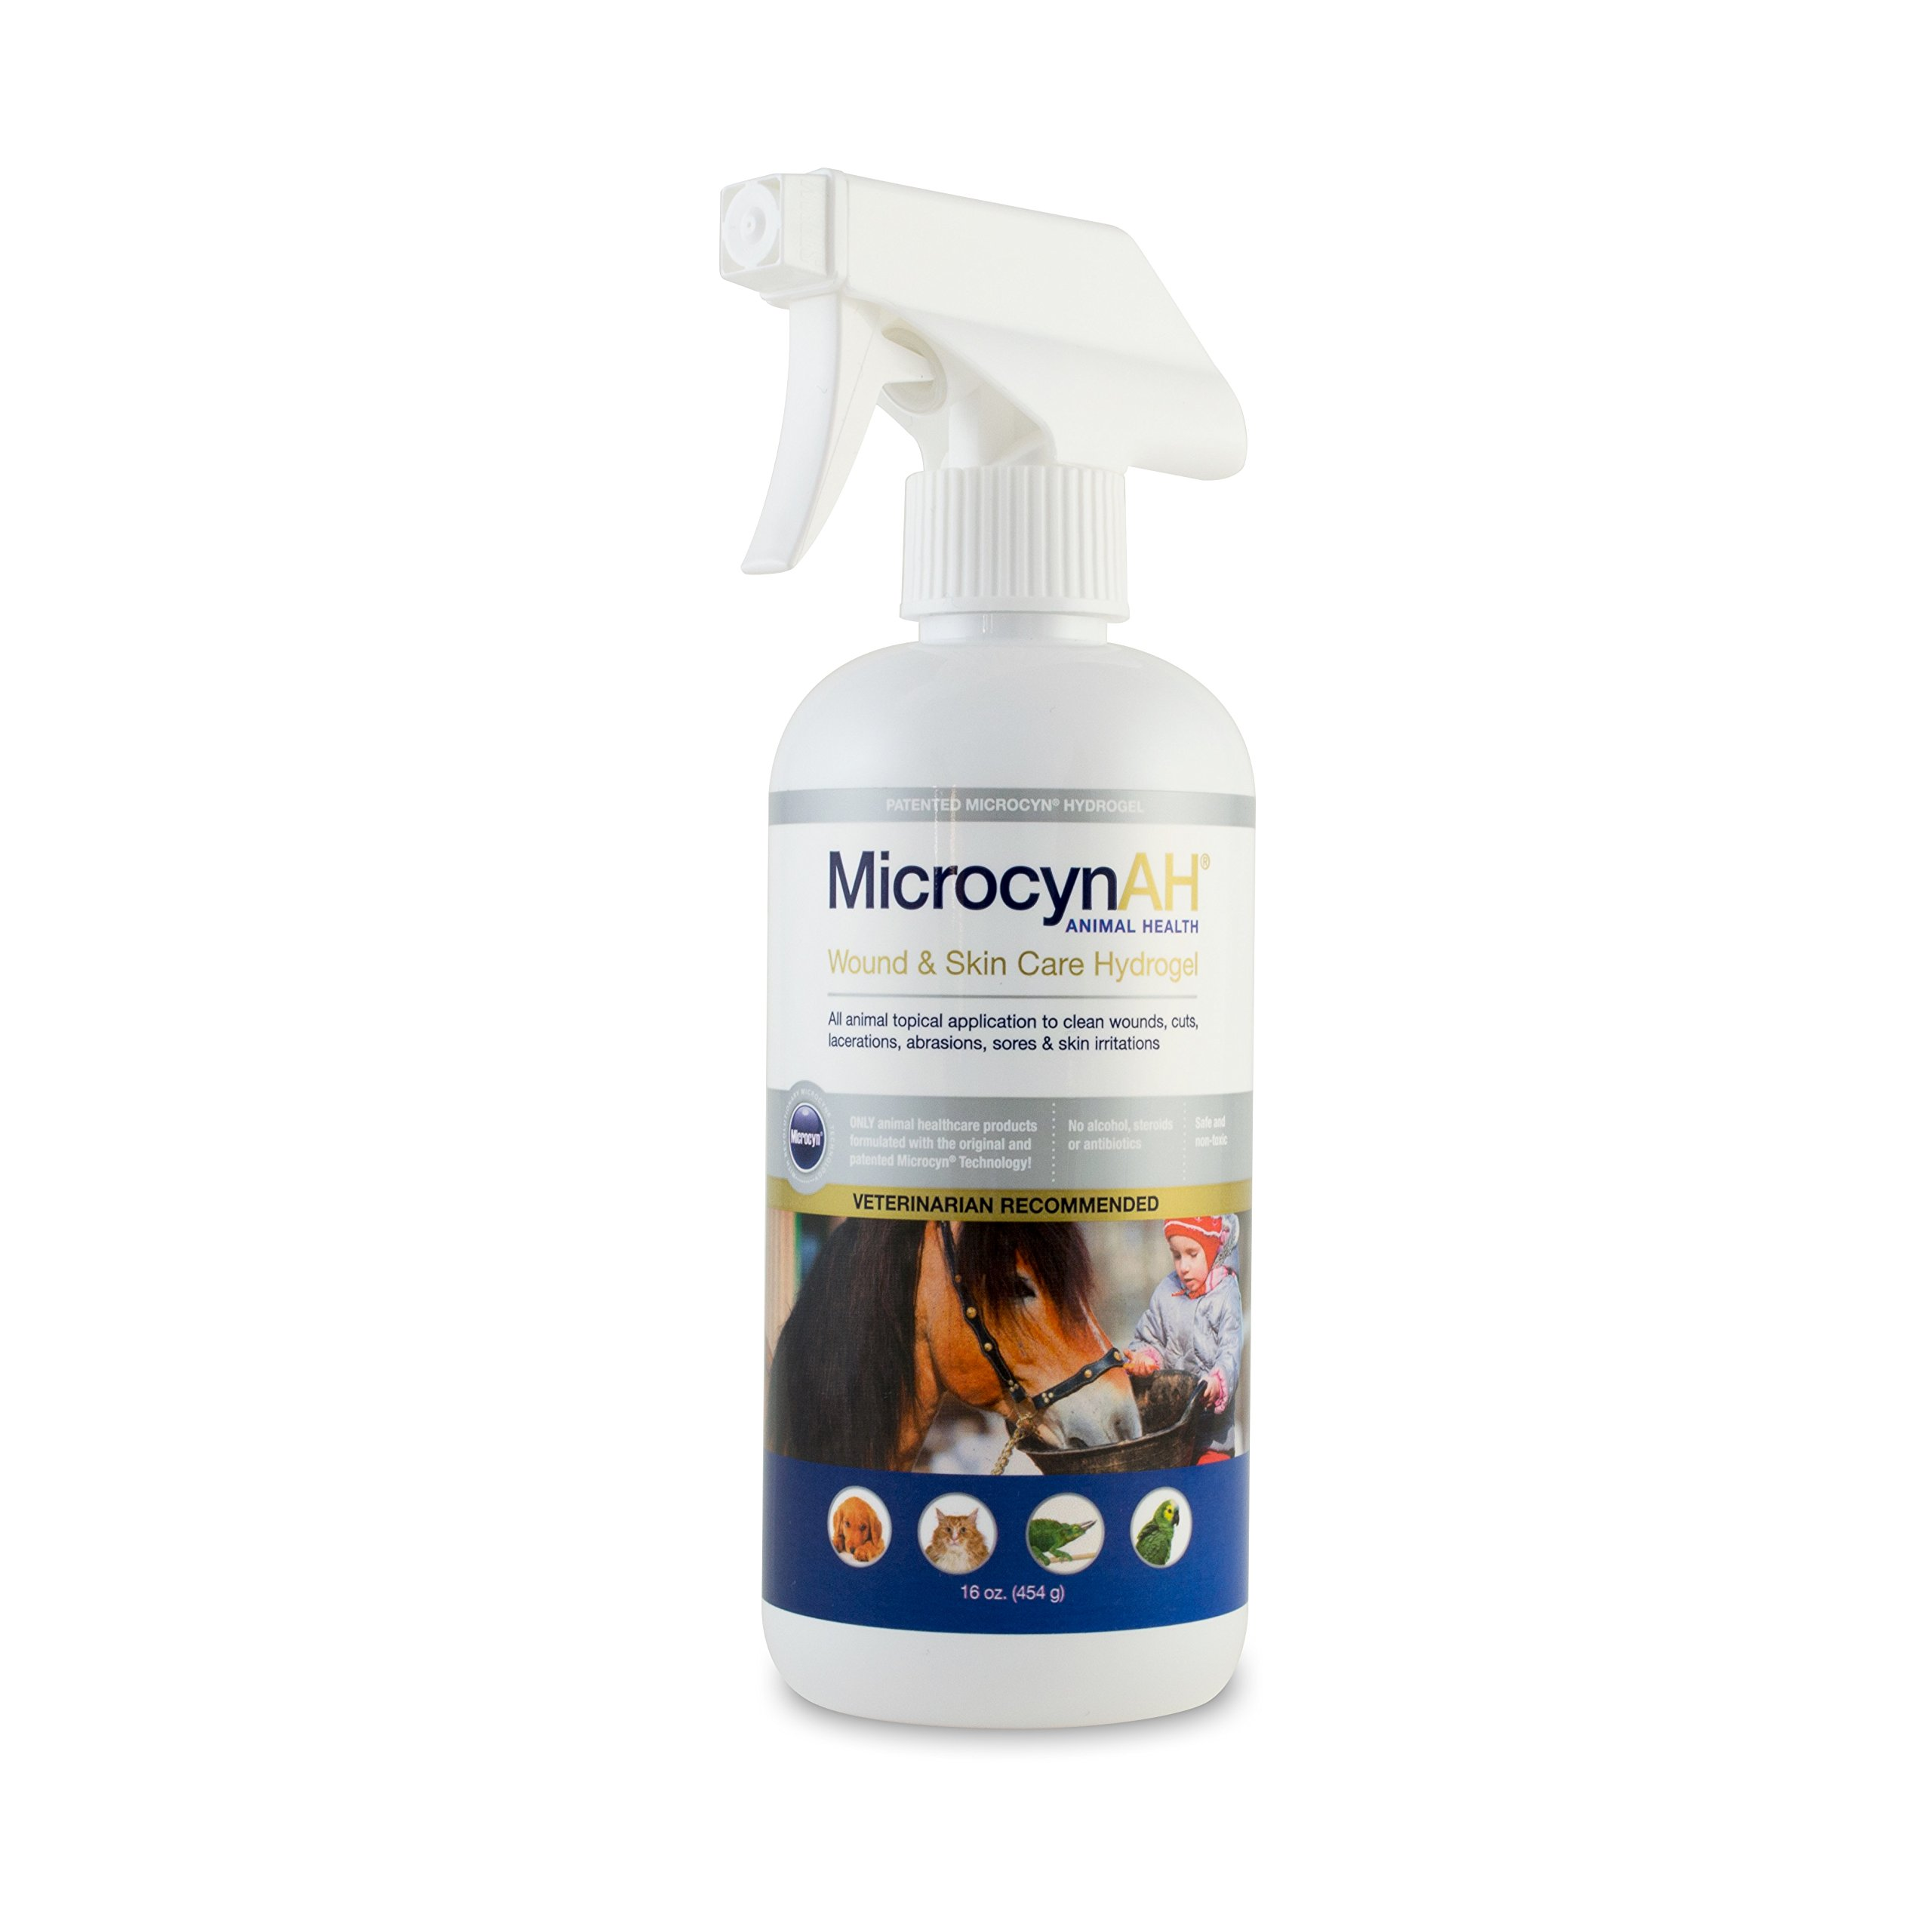 MicrocynAH Wound and Skin Care Sprayable Hydrogel, 16-Ounce